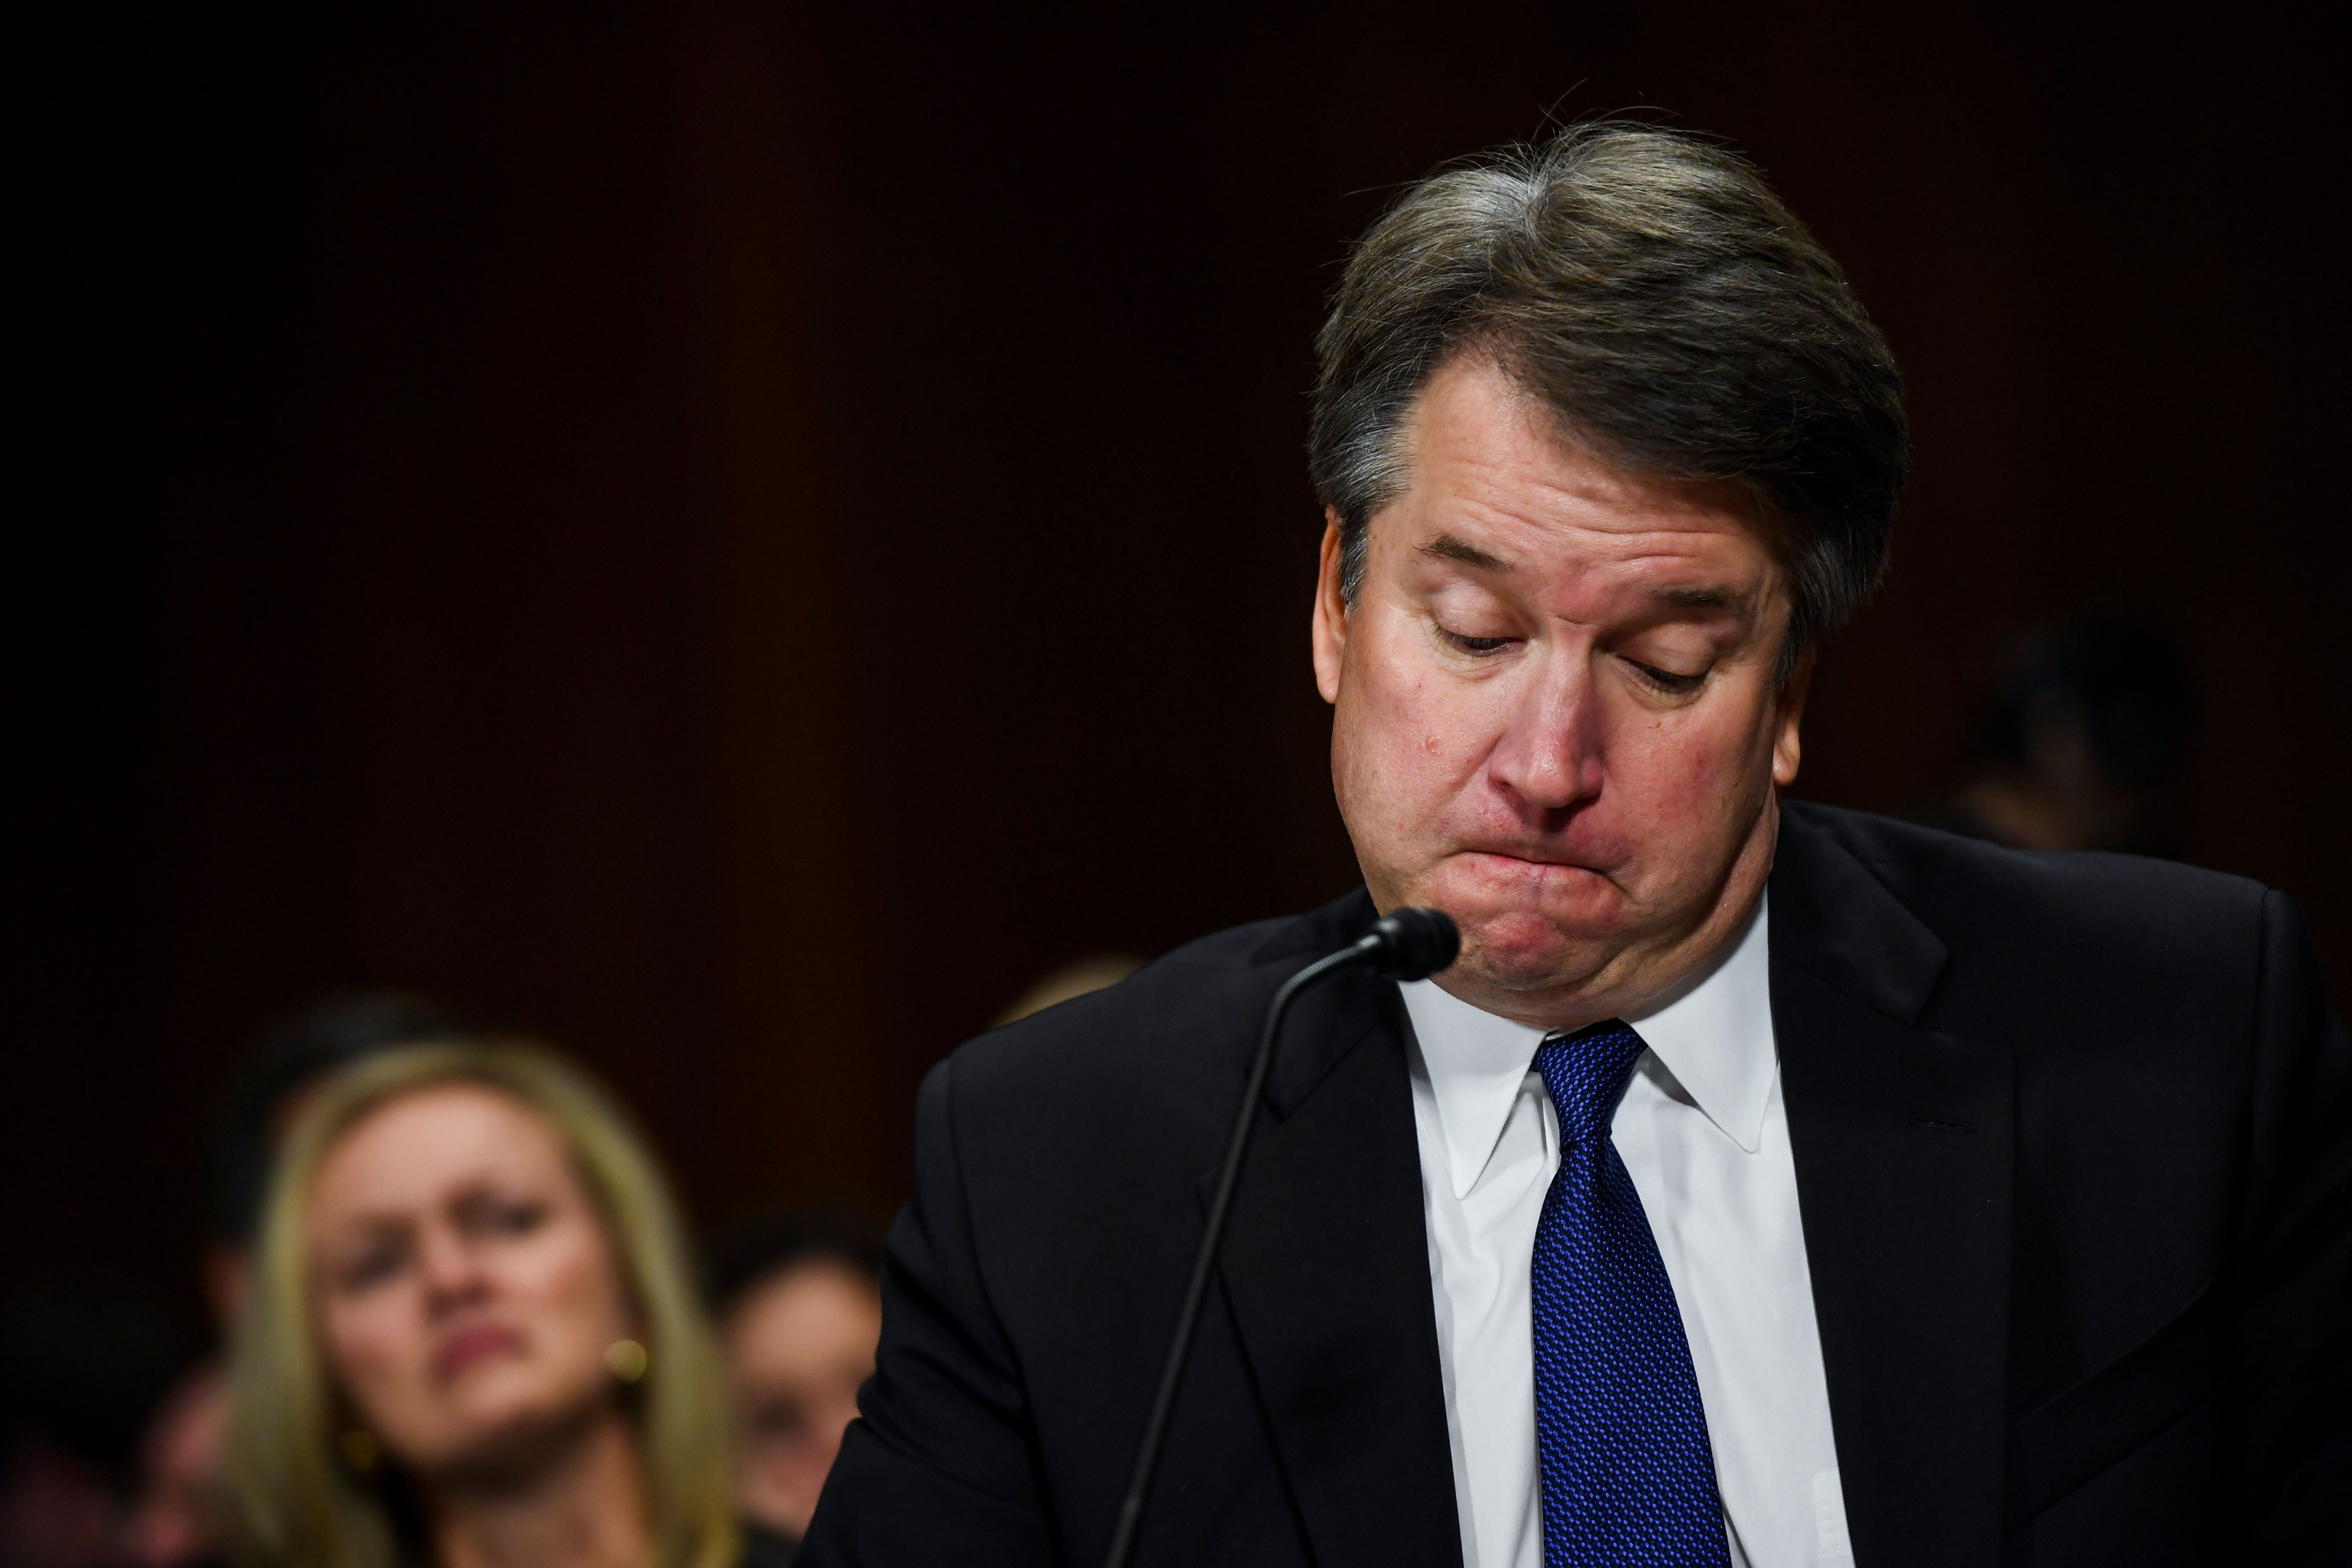 WASHINGTON, DC - SEPTEMBER 27: Judge Brett M. Kavanaugh tears up at a Senate Judiciary Committee hearing on Thursday, September 27, 2018 on Capitol Hill. Blasey Ford, a professor at Palo Alto University and a research psychologist at the Stanford University School of Medicine, has accused Supreme Court nominee Brett Kavanaugh of sexually assaulting her during a party in 1982 when they were high school students in suburban Maryland. (Photo by Matt McClain-Pool/Getty Images)